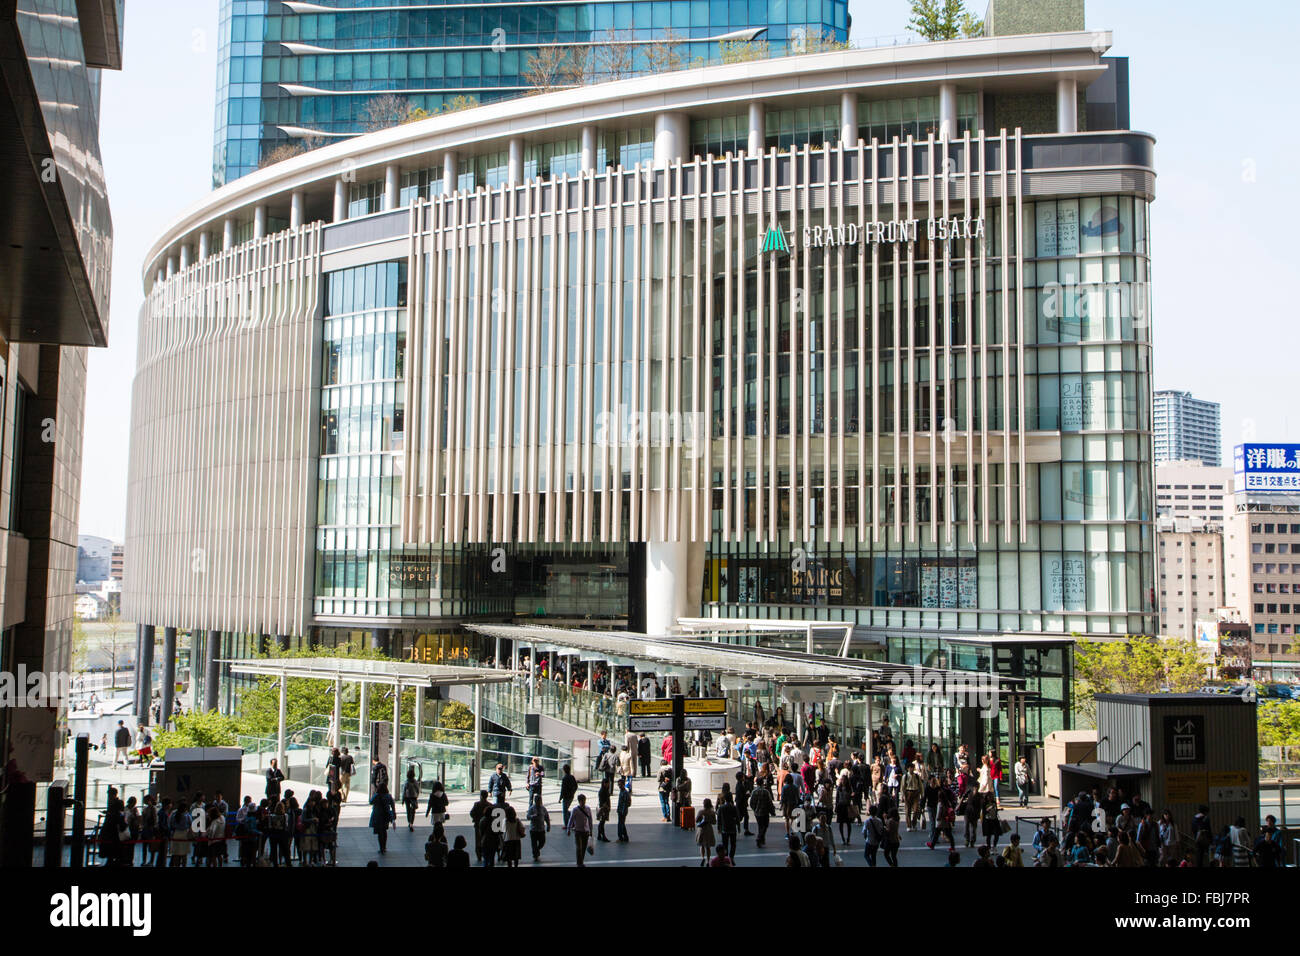 'Grand Front Osaka' store, in Umeda, Osaka. Modern glass metal framed multi story building with crowded - Stock Image